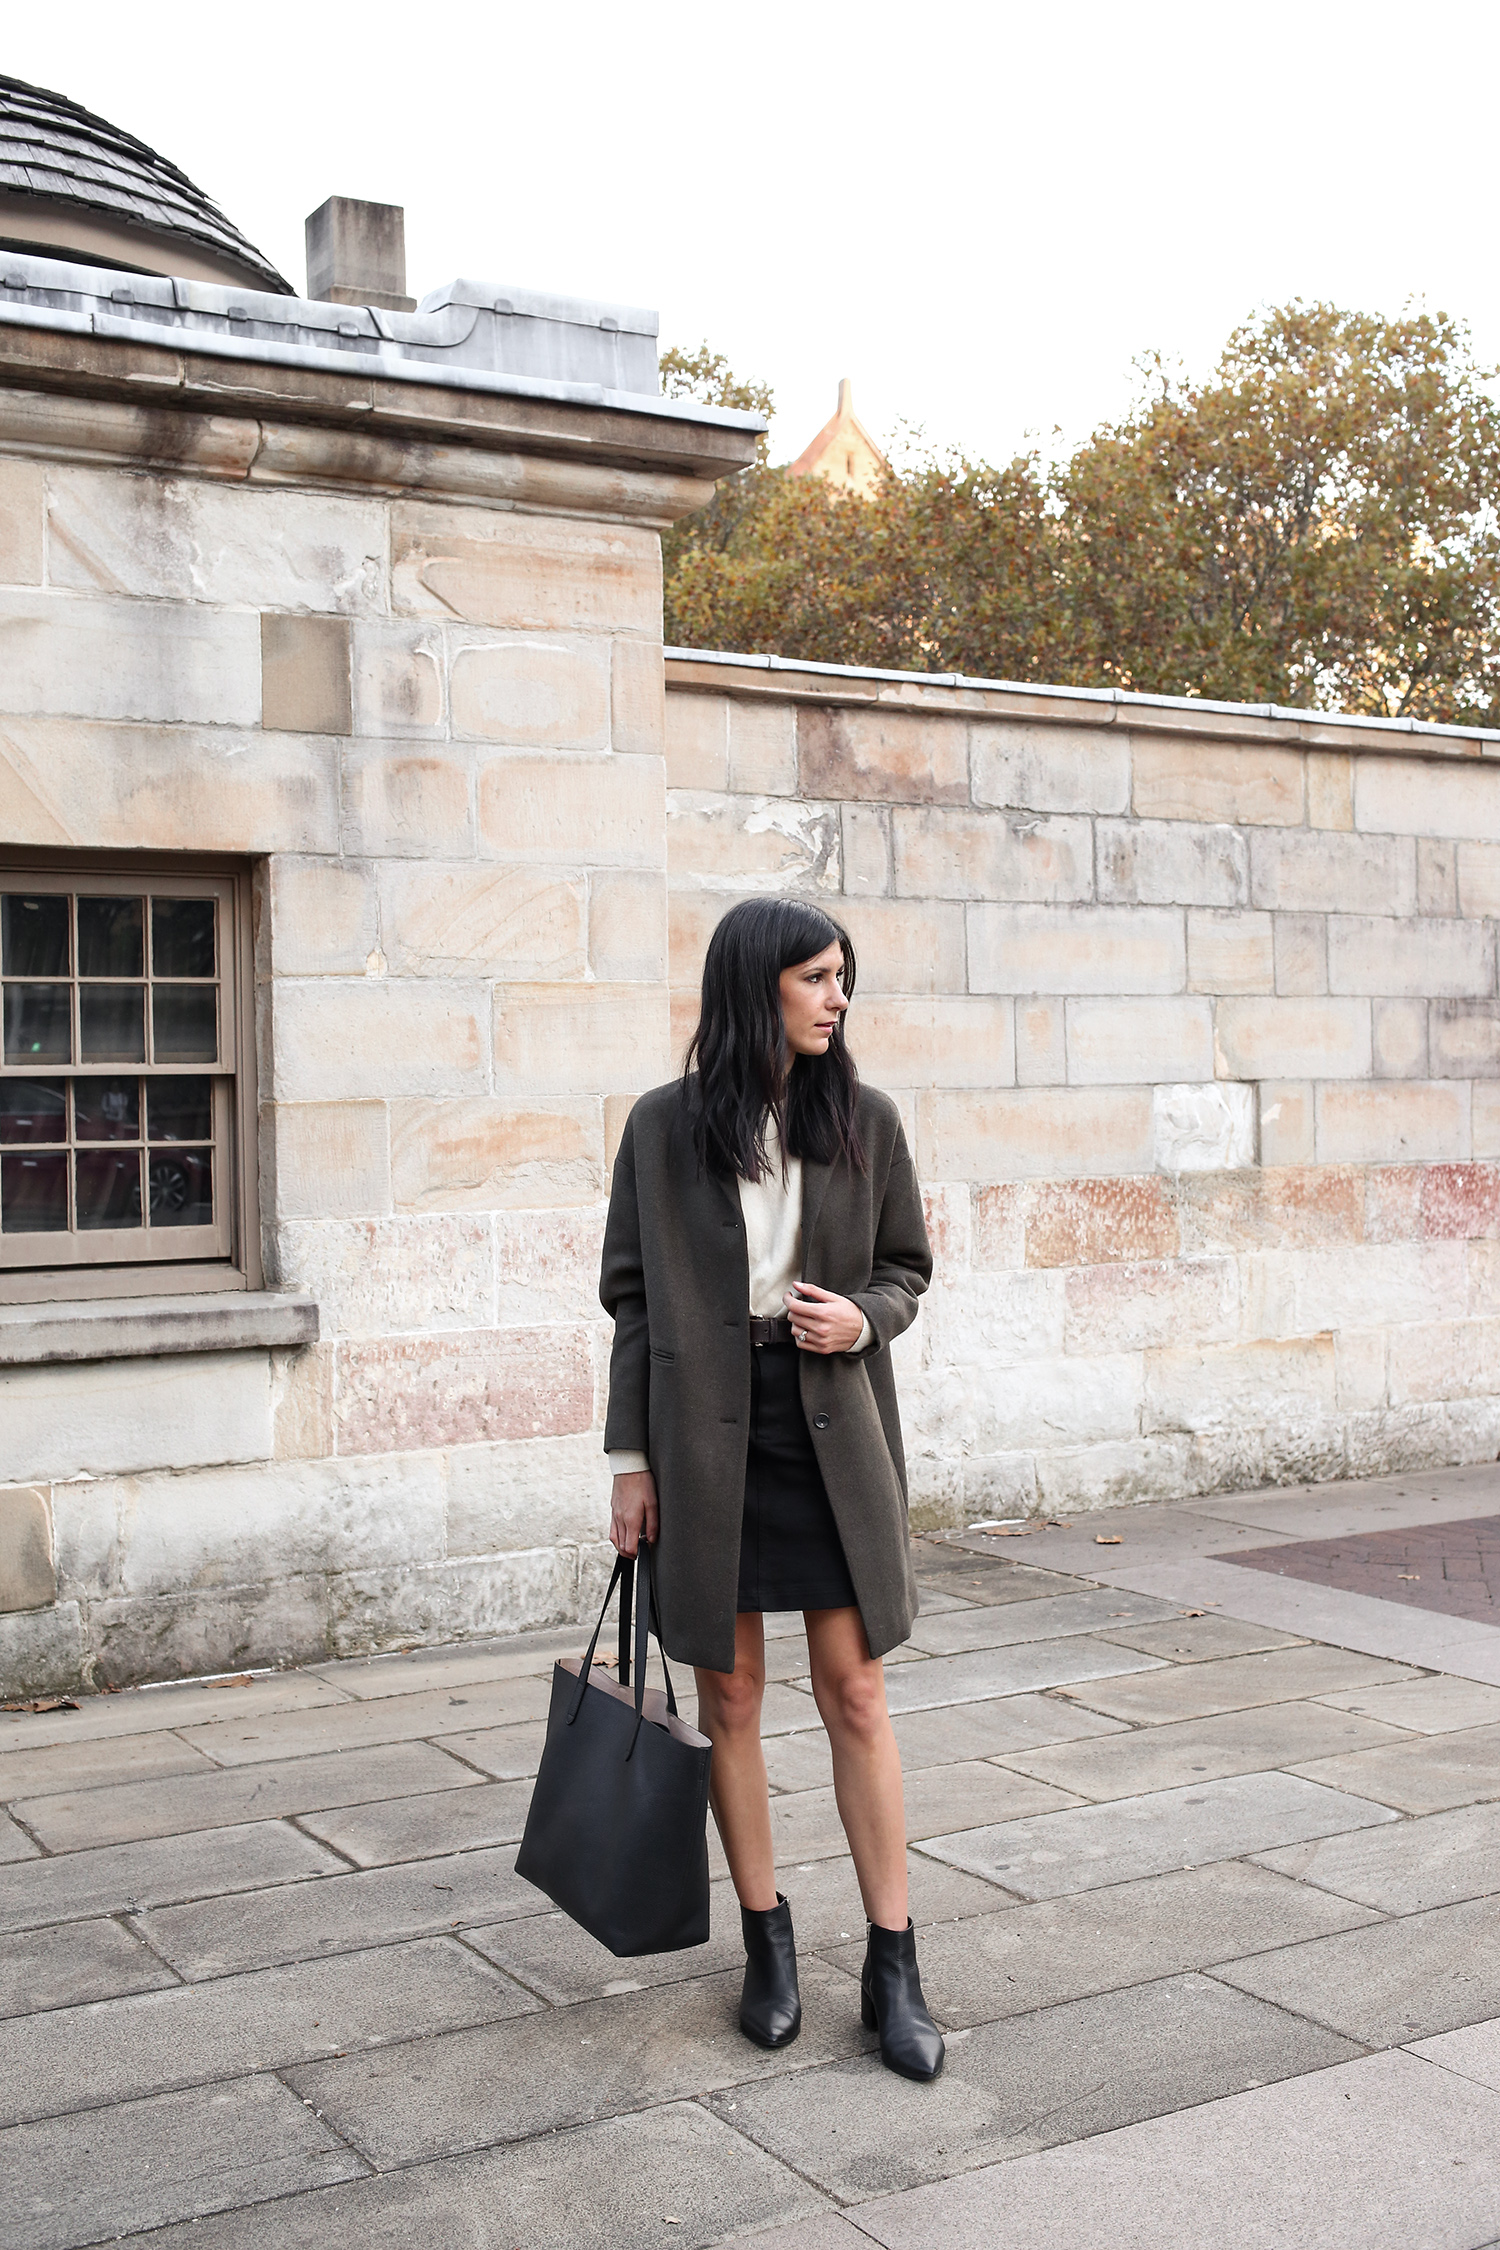 813881e591 Jamie Lee Mademoiselle wearing an Autumn Minimal Style Outfit of a cashmere  sweater with mini skirt ...